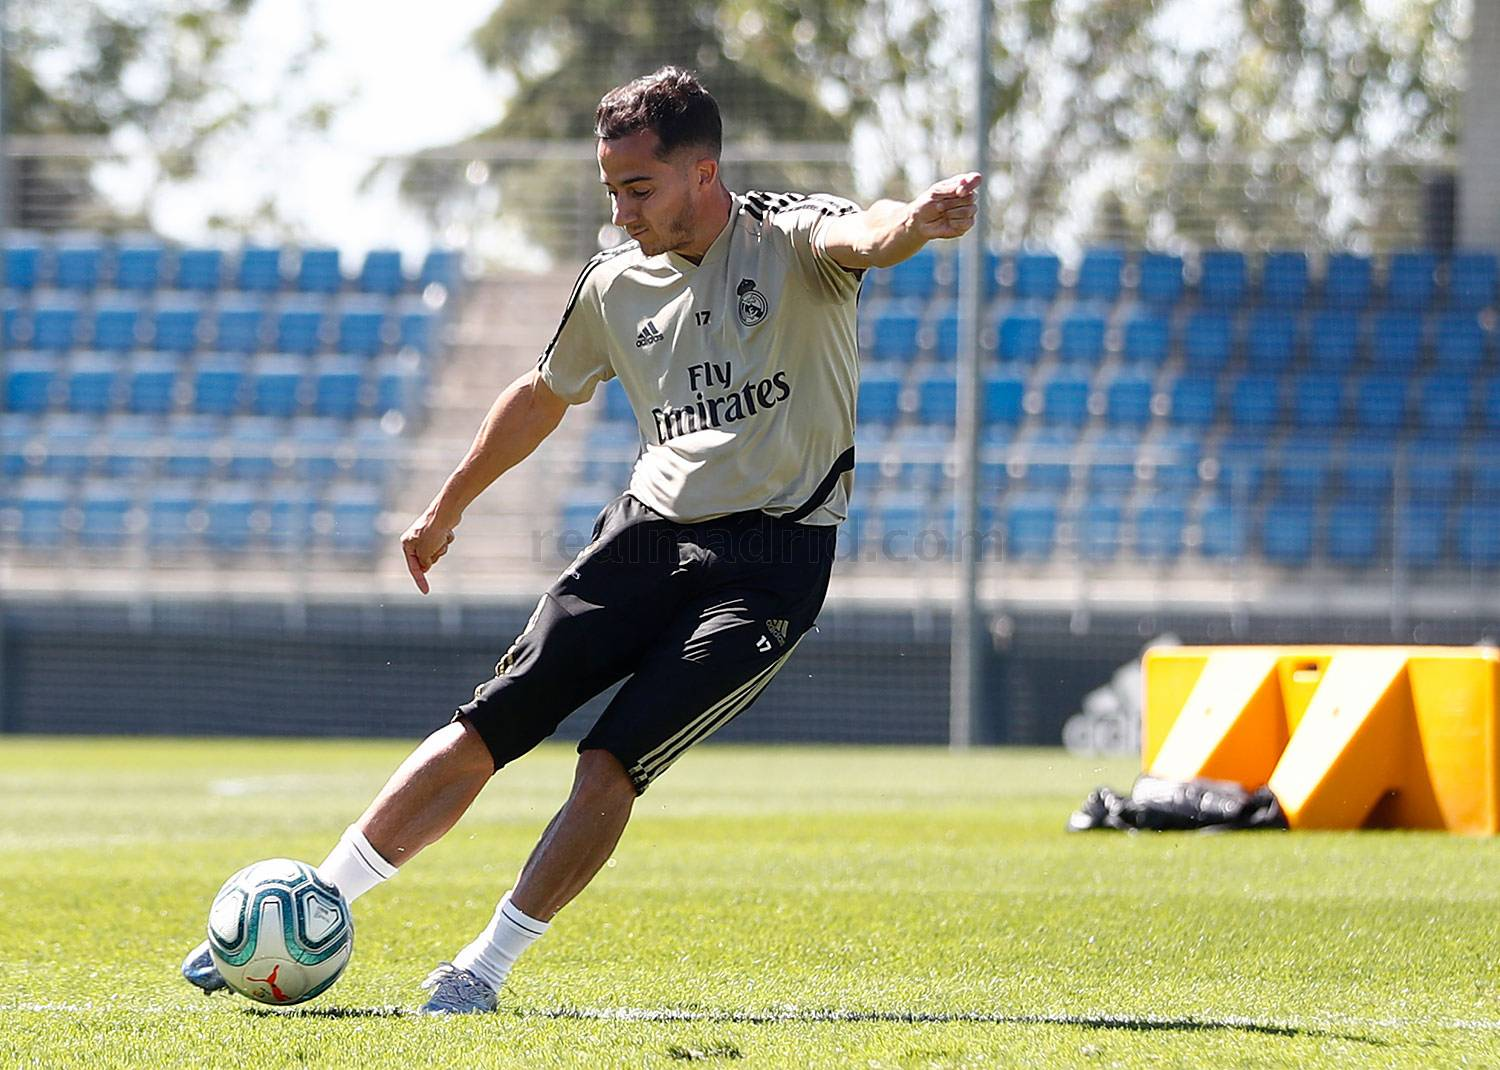 Real Madrid - Entrenamiento del Real Madrid  - 18-05-2020